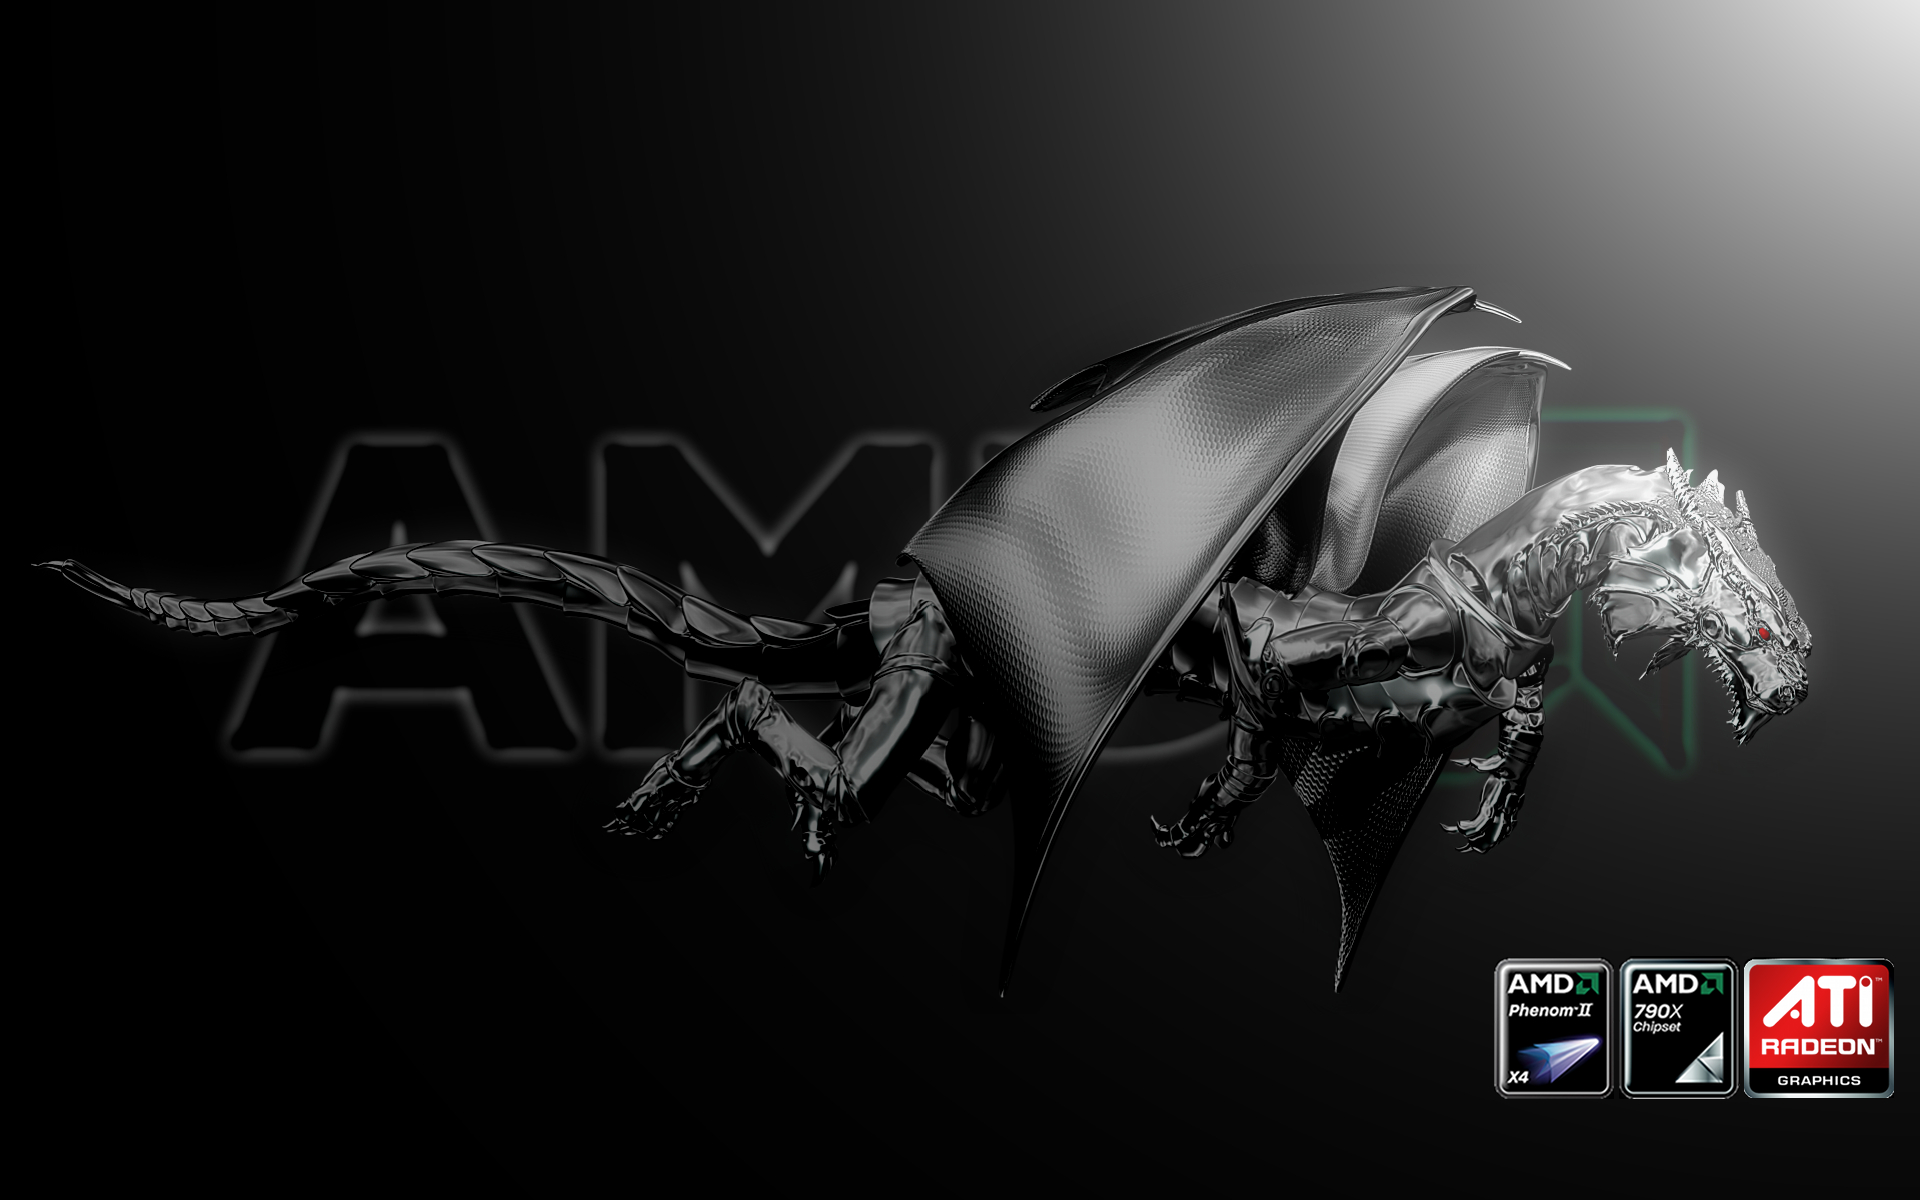 download amd dragon wallpapers - photo #19